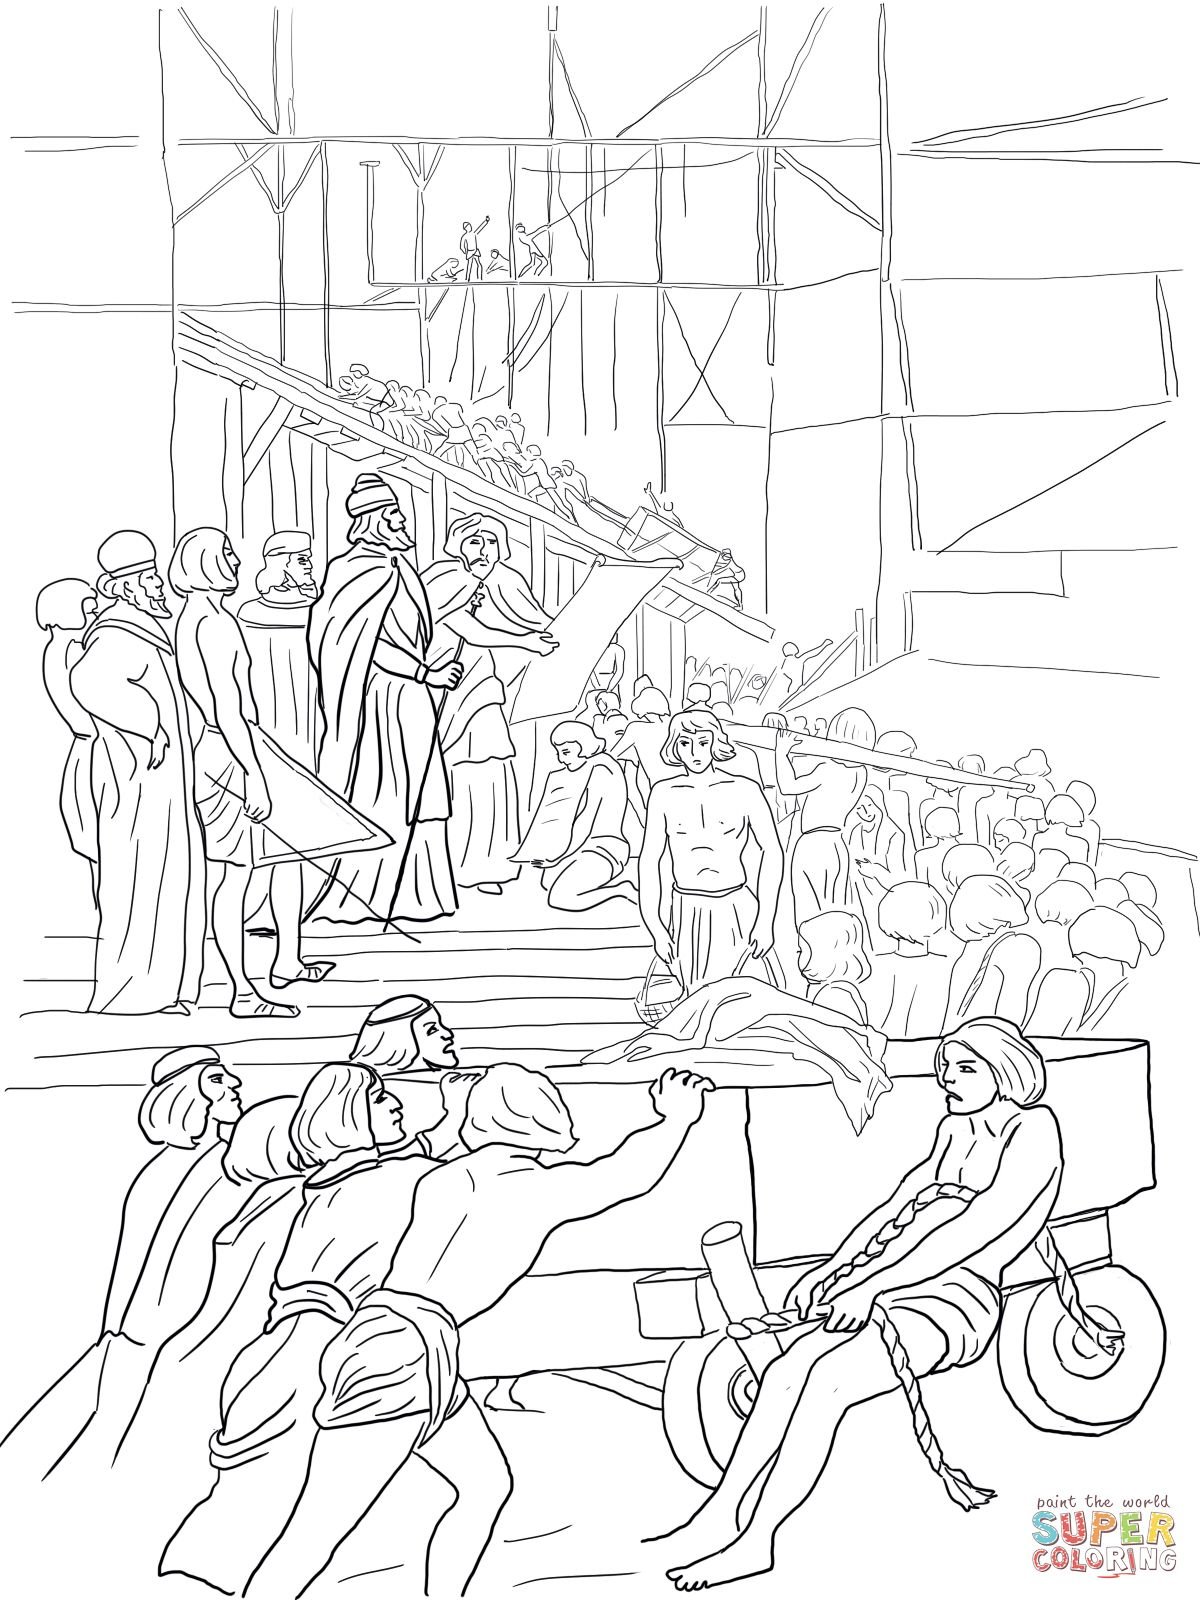 building the temple coloring pages - king solomon builds the temple coloring page